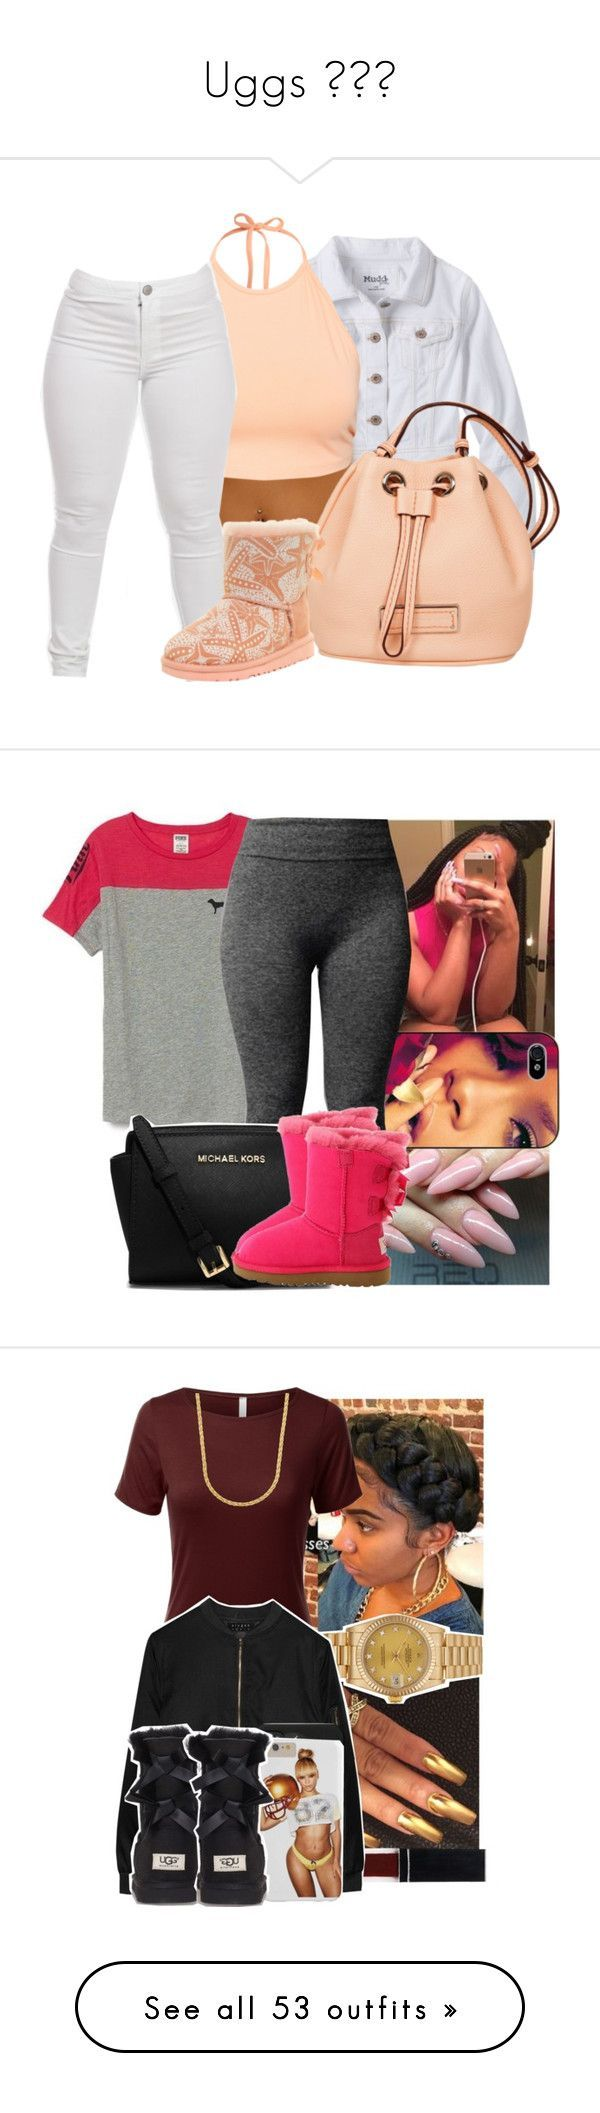 """Uggs 👸👌❣"" by prinxcess-adri ❤ liked on Polyvore featuring Mudd, NLY Trend, Marc by Marc Jacobs, UGG Australia, Victoria's Secret, MICHAEL Michael Kors, Witchery, Rolex, Alygne and H&M"